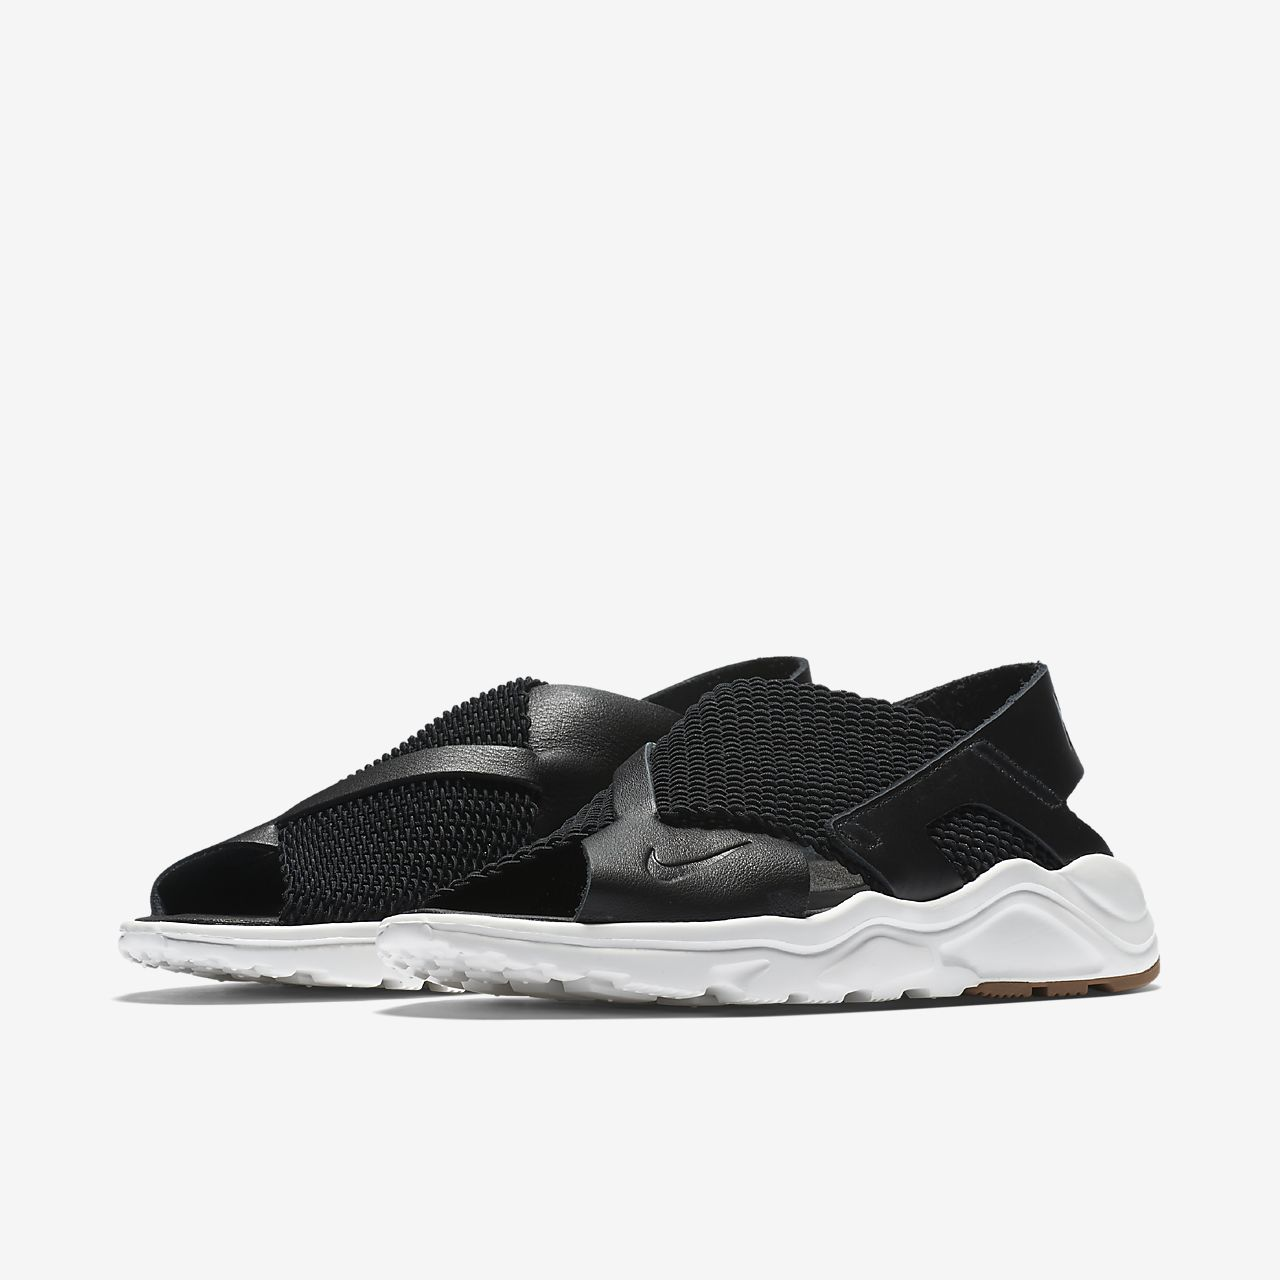 nike huarache ultra women's black